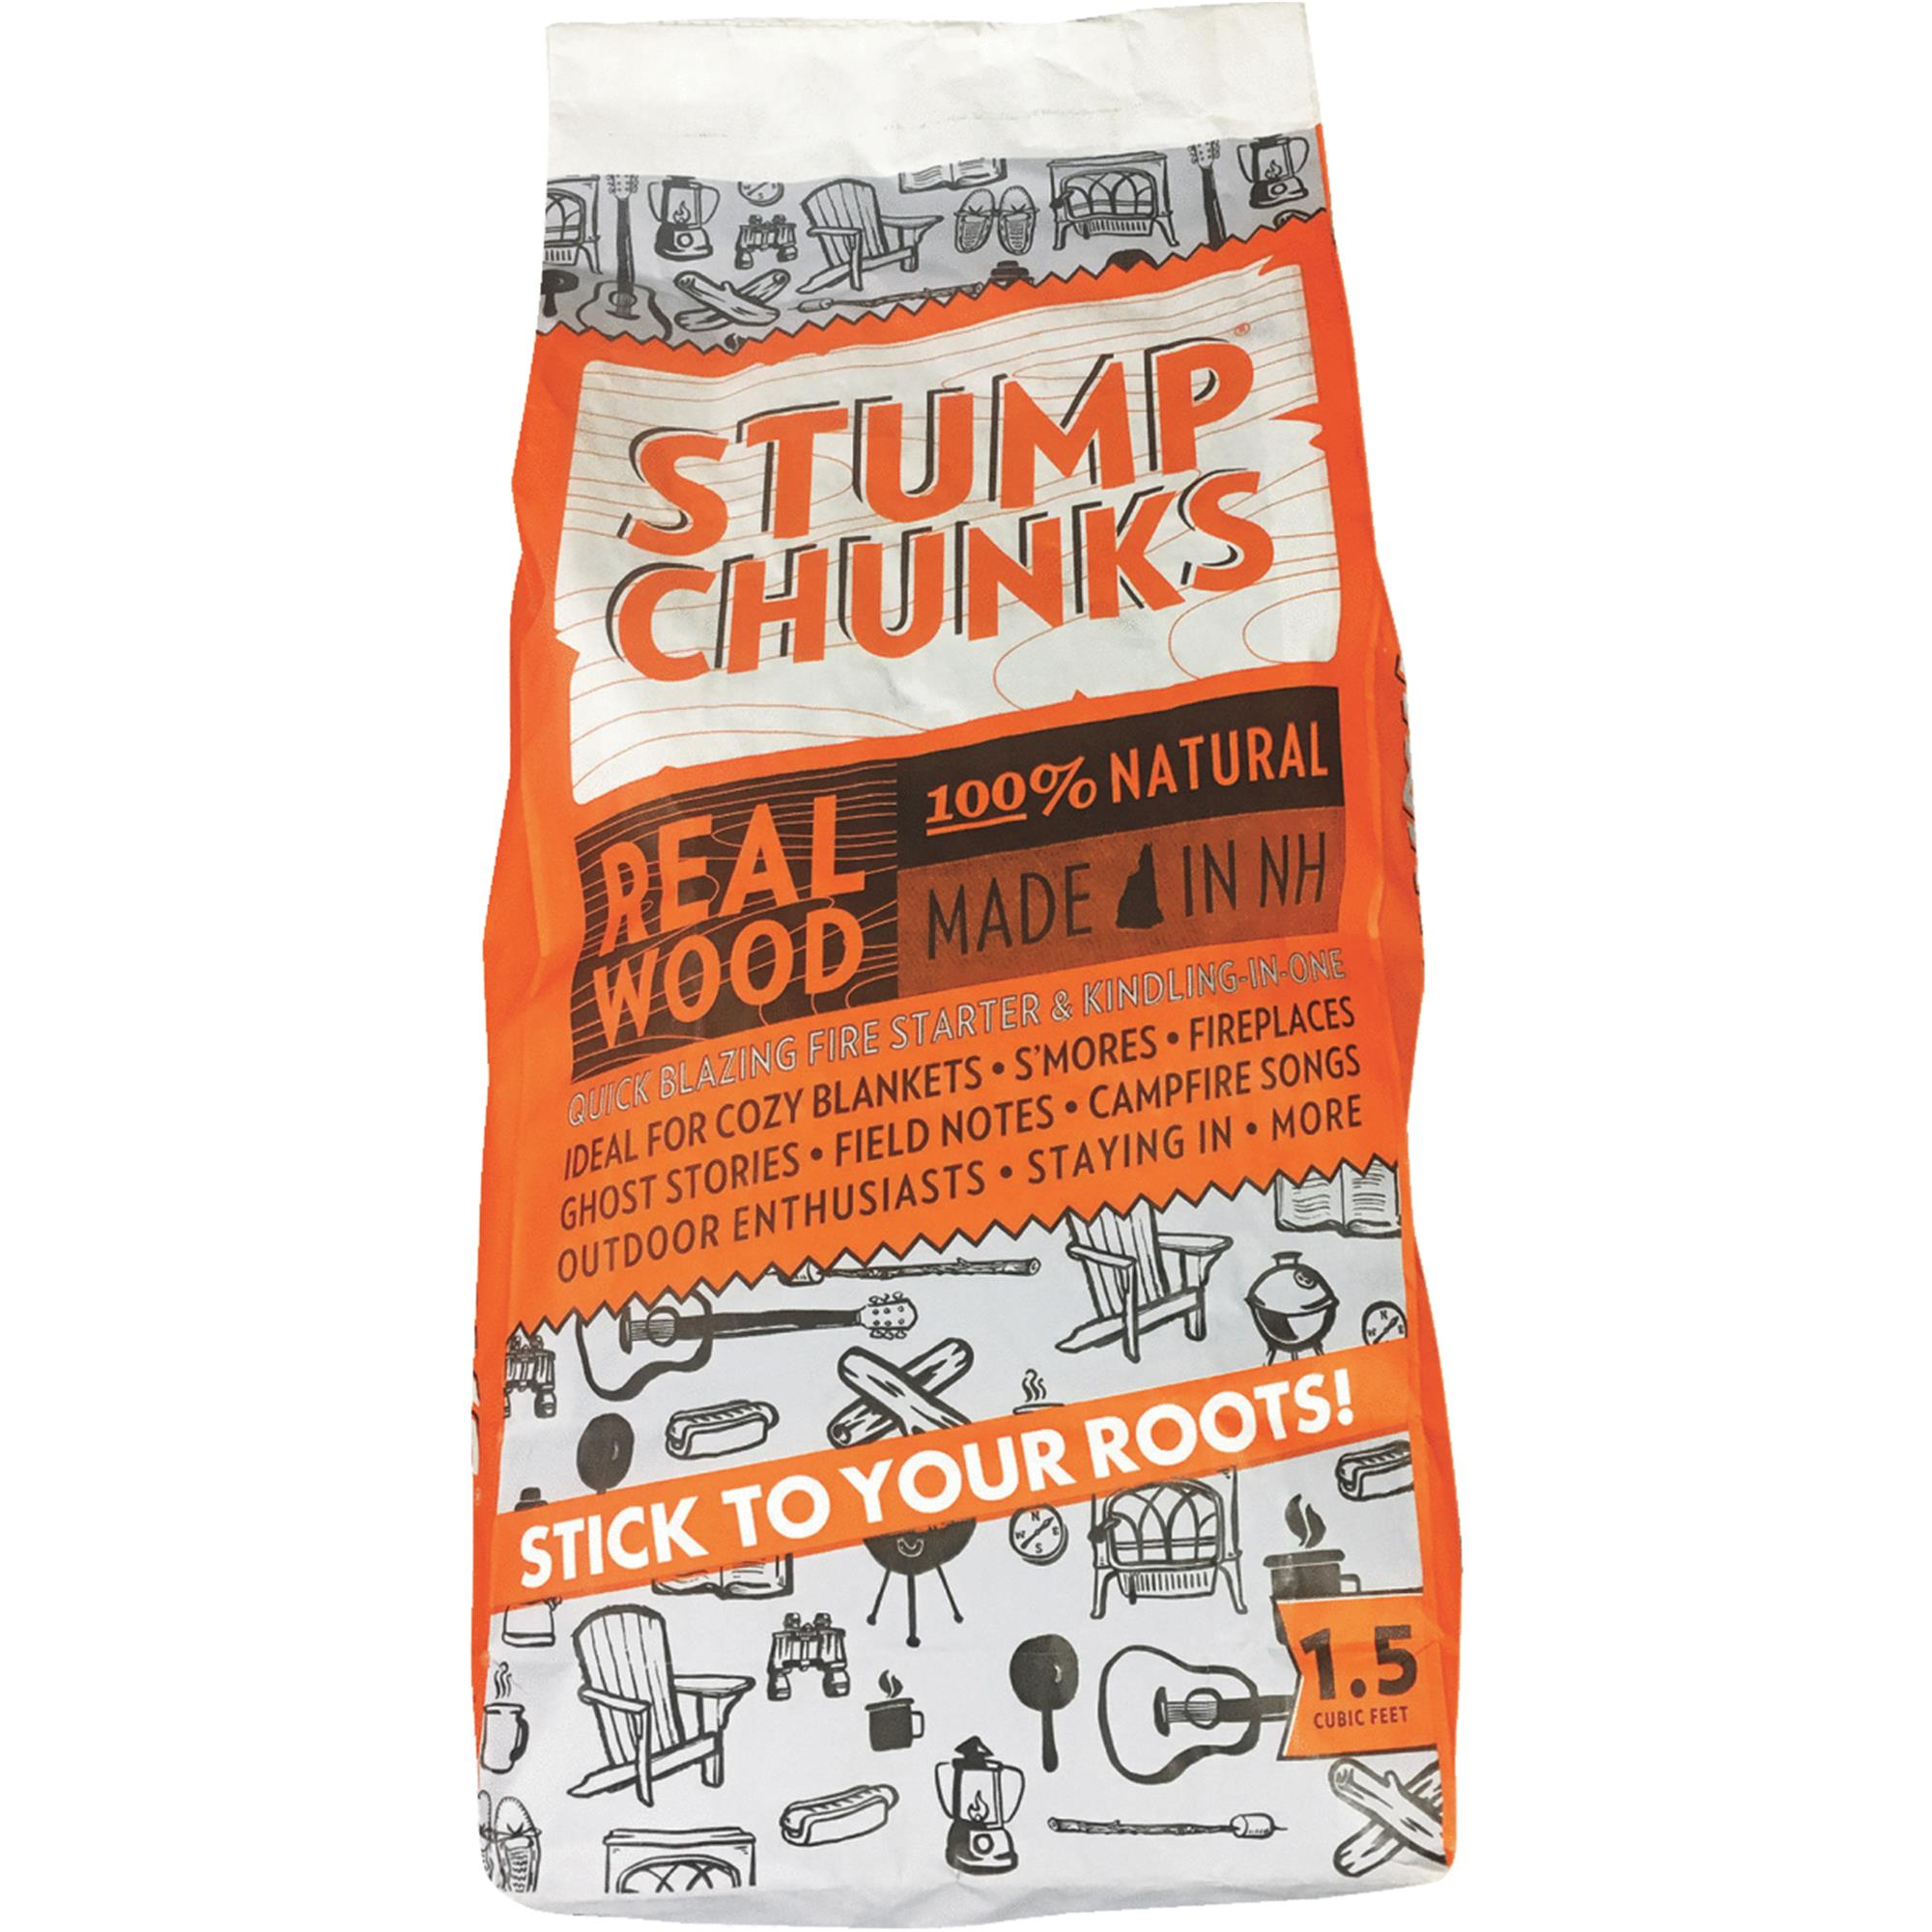 Stump Chunks Kindling & Fire Starter by Stump Chunks